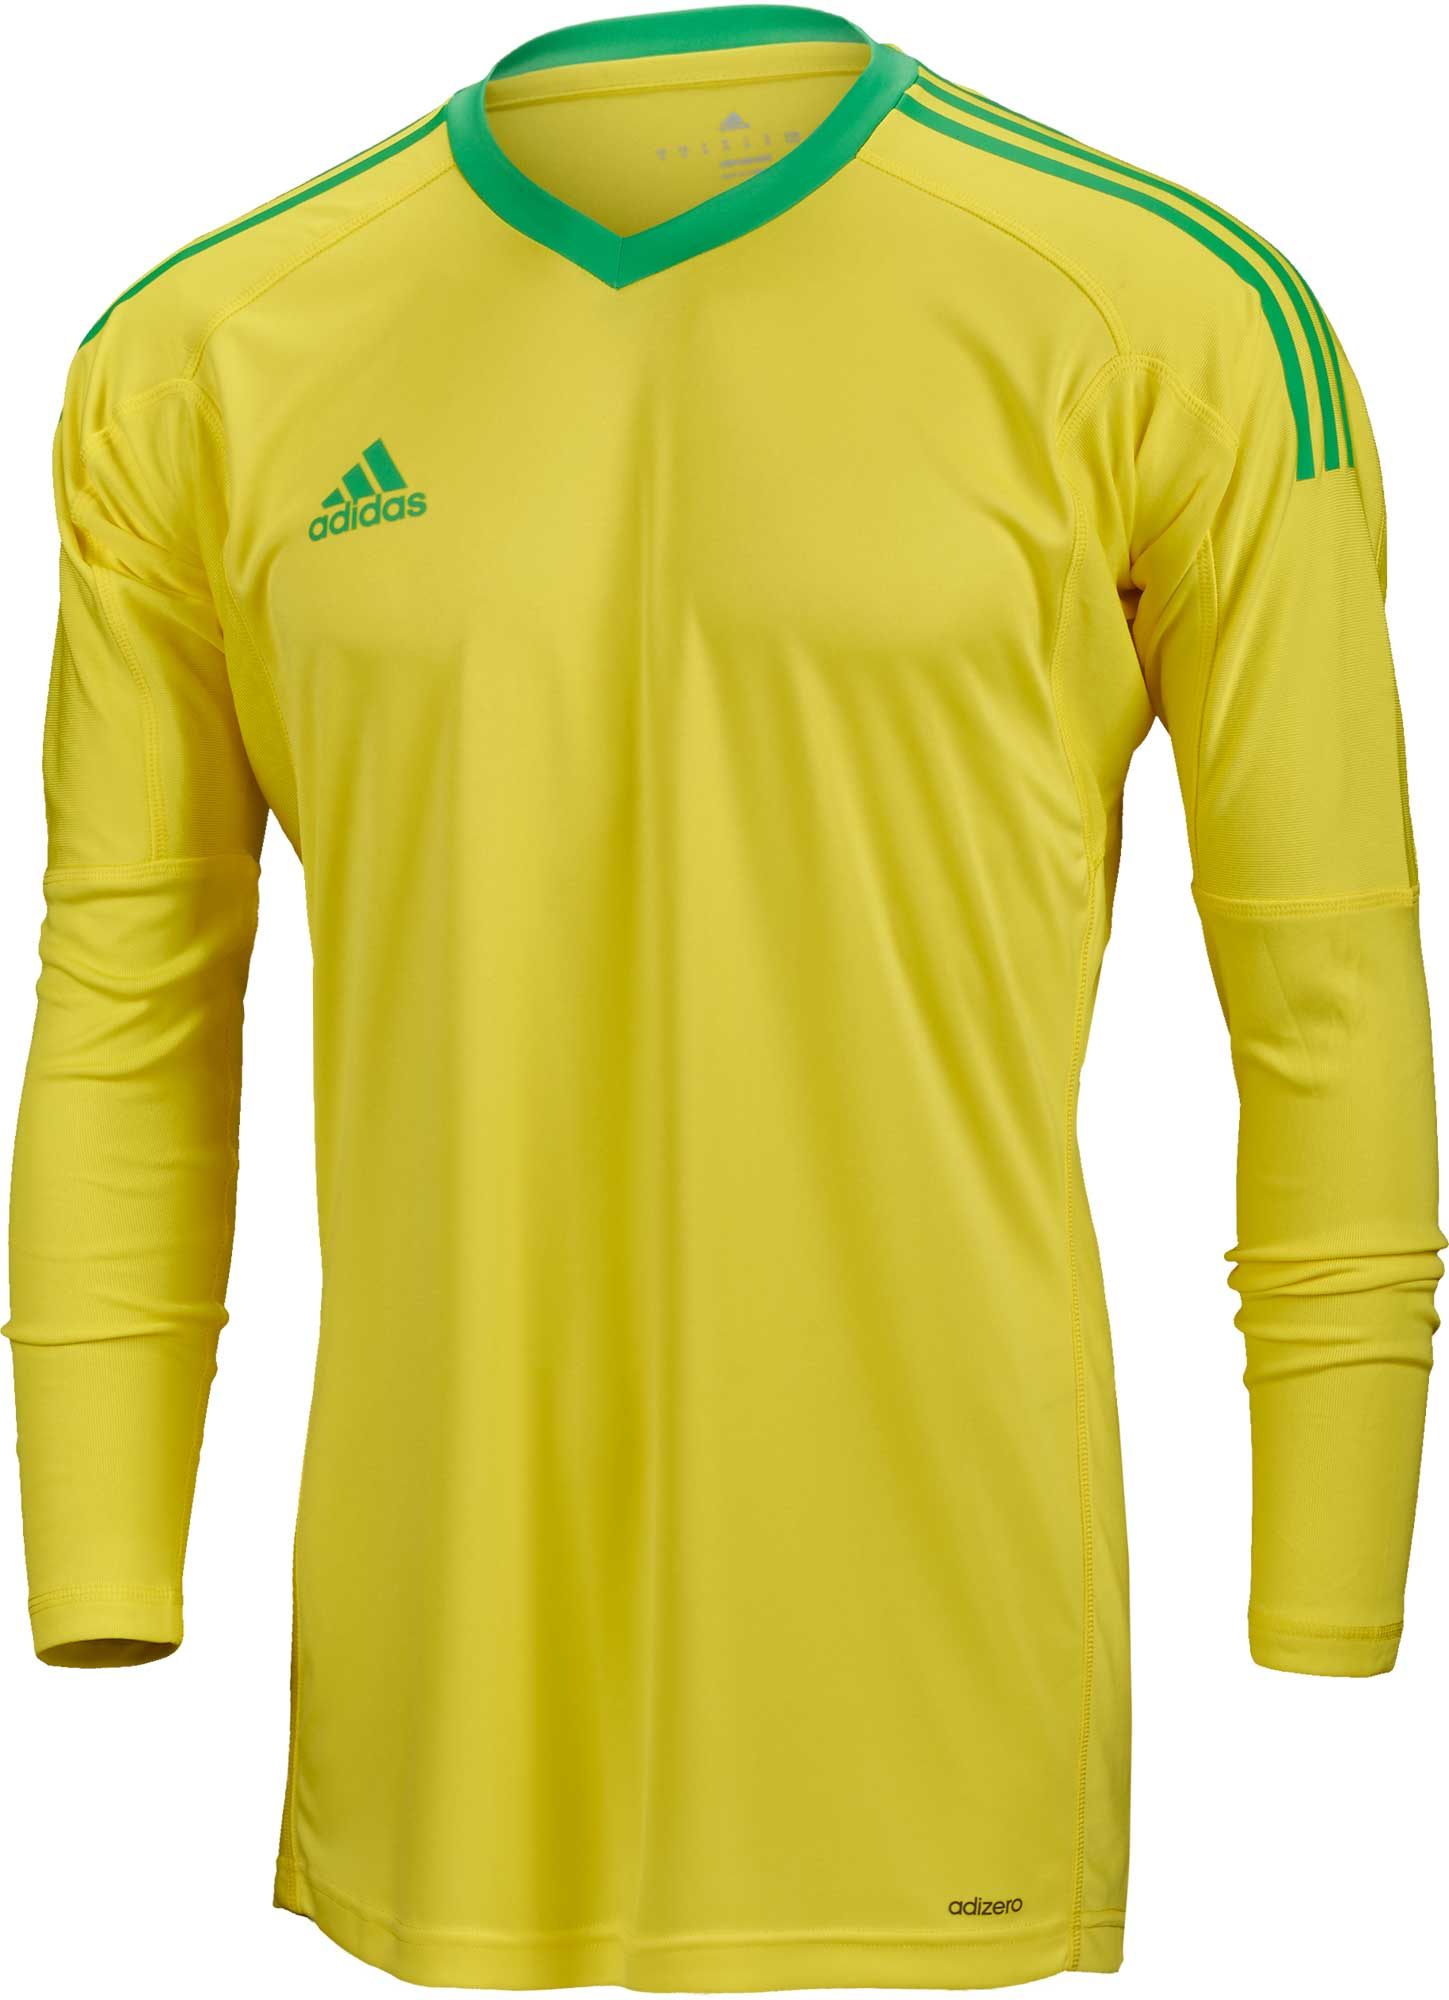 ca73979e9 adidas Revigo 17 Goalkeeper Jersey – Bright Yellow Energy Green